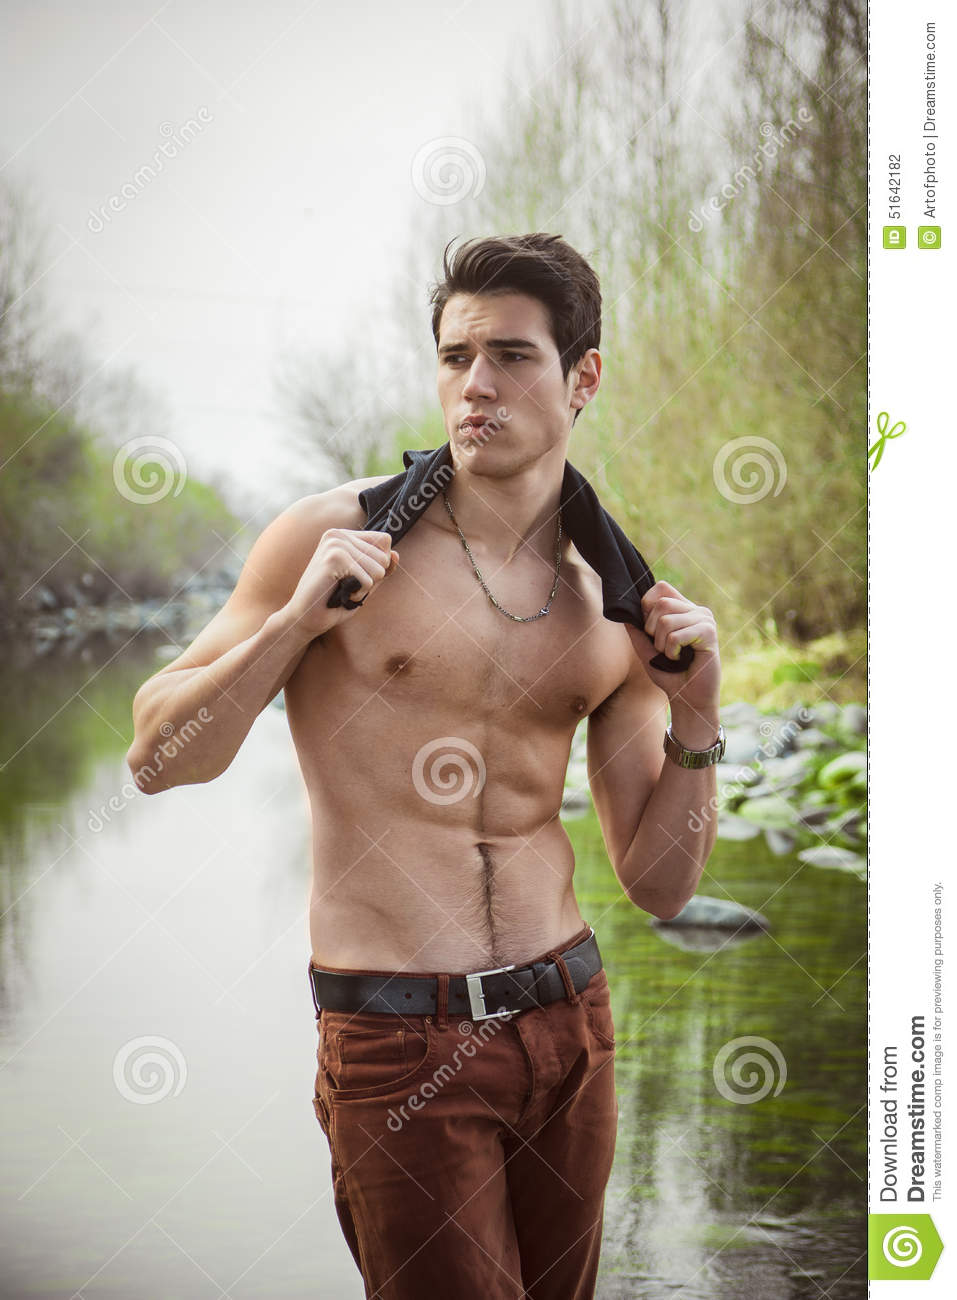 Attractive Muscular Young Shirtless Athletic Man Stock